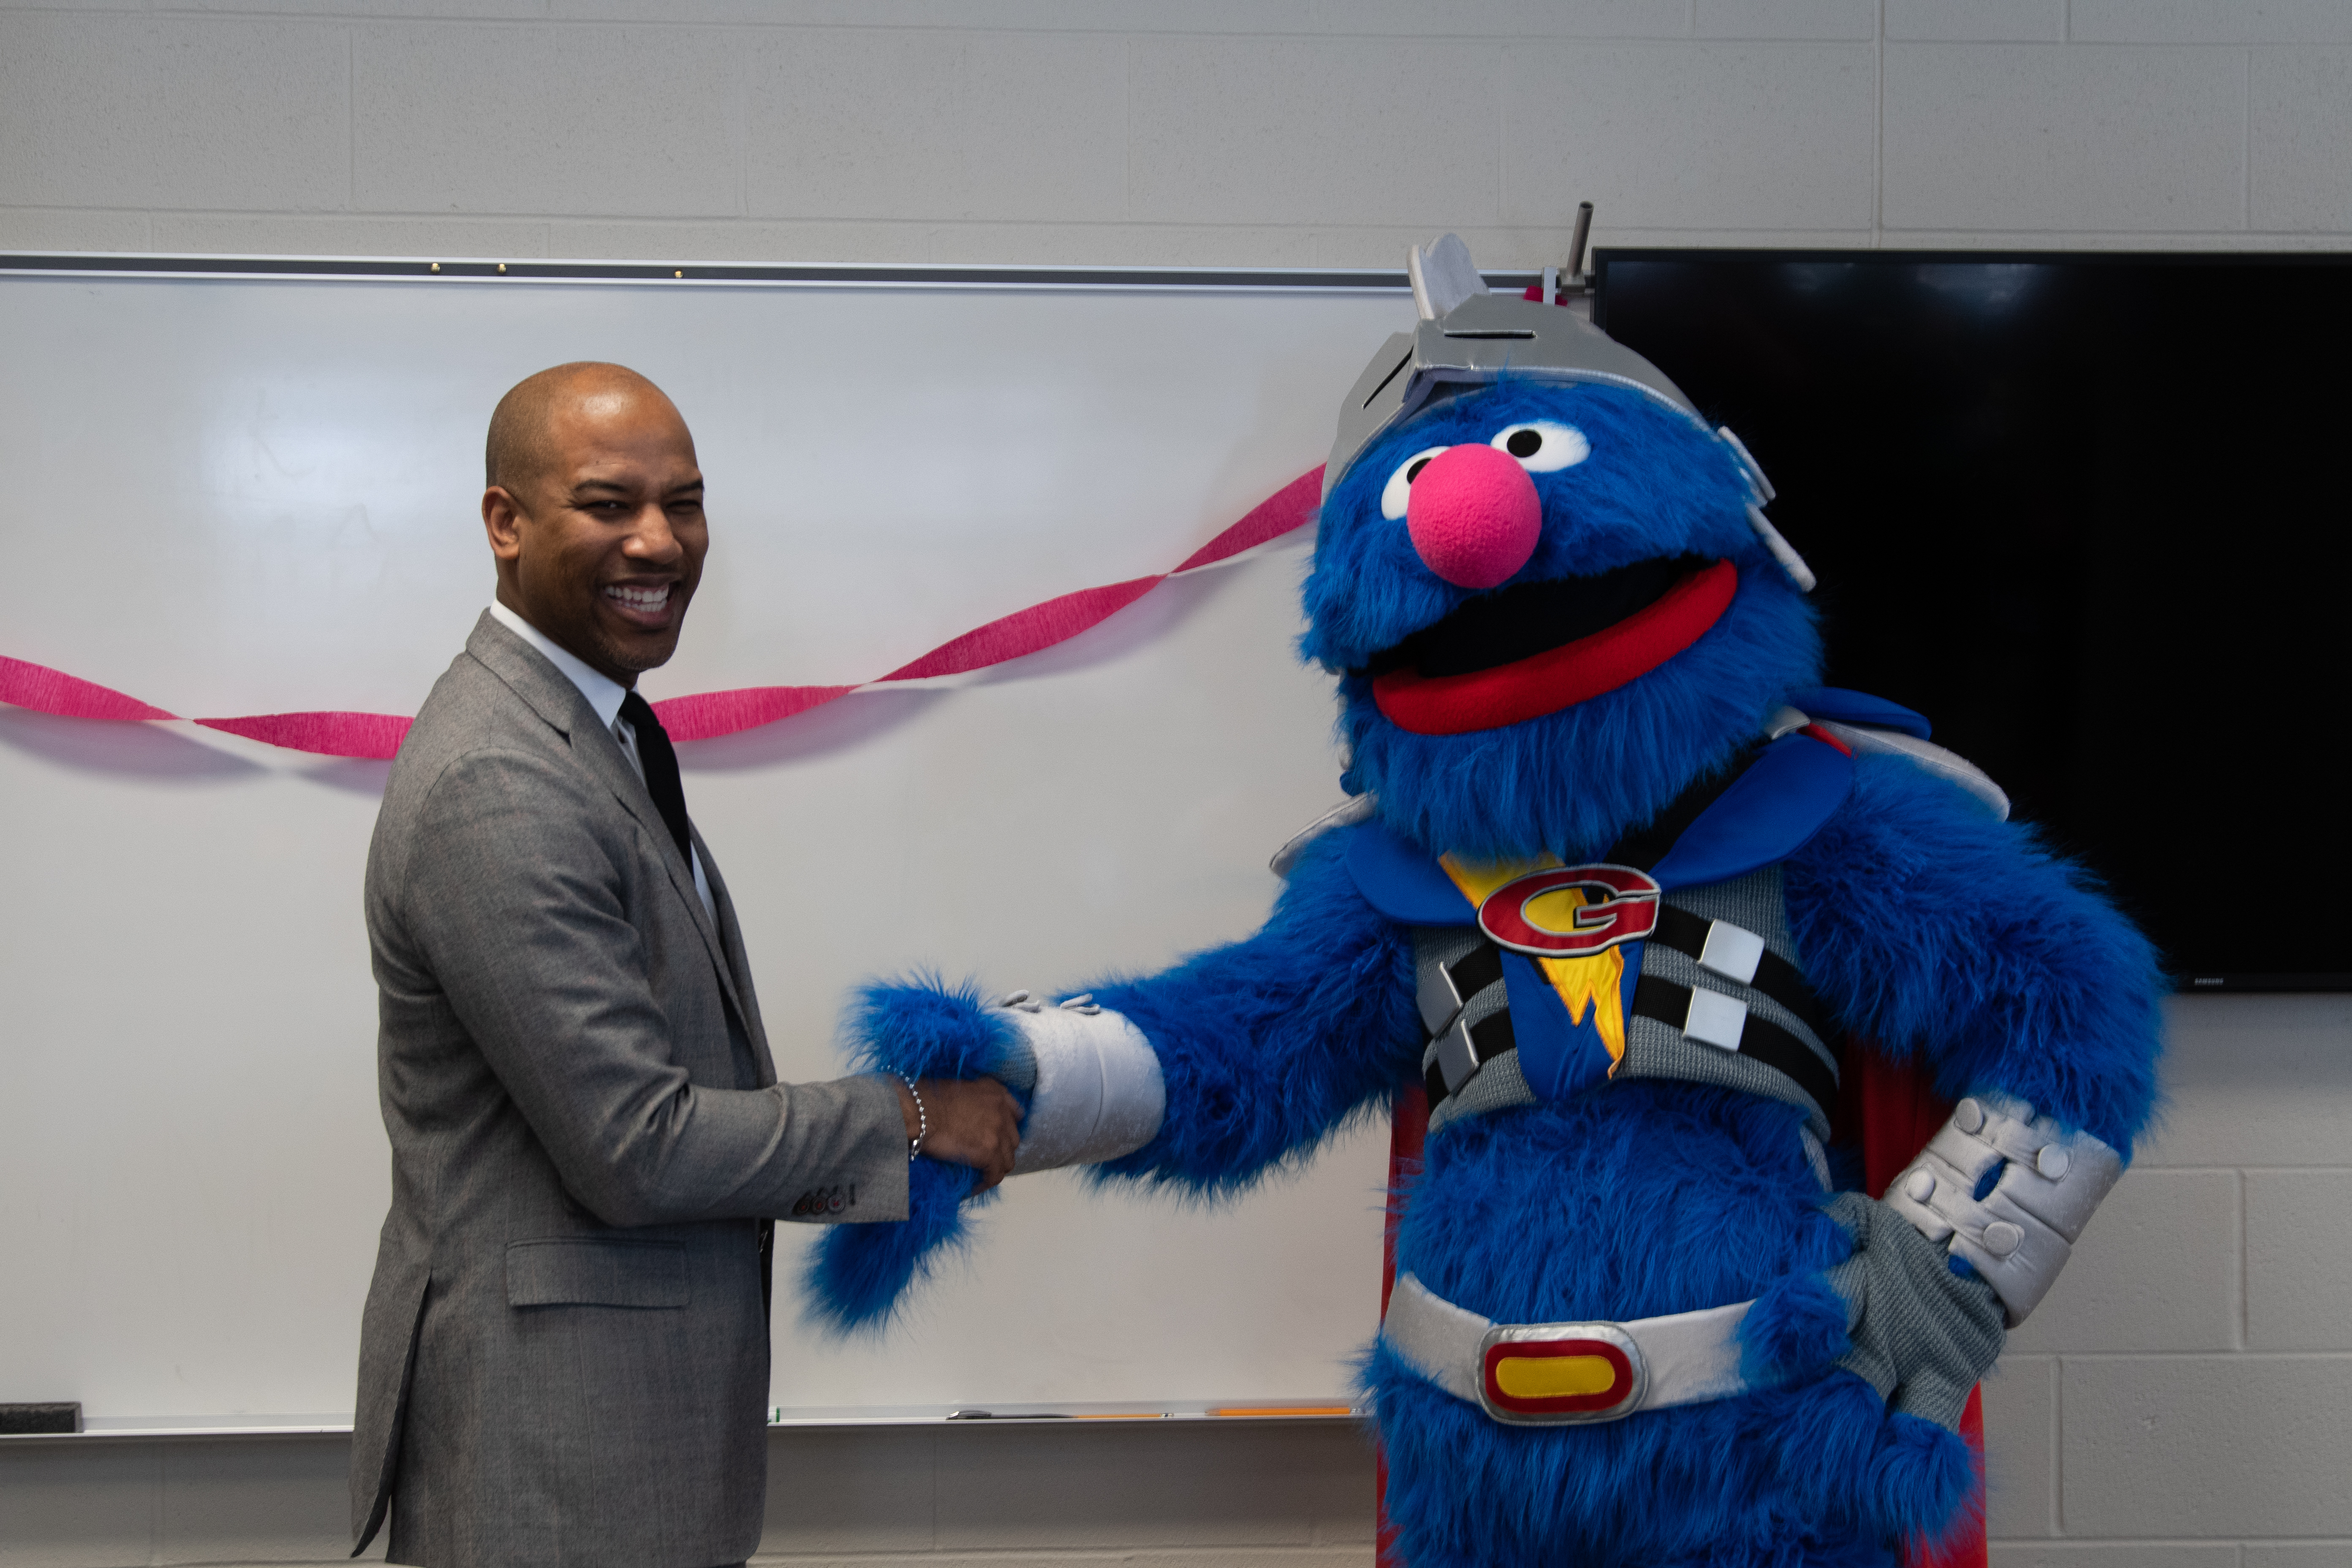 Dr. Charles Foust with super grover